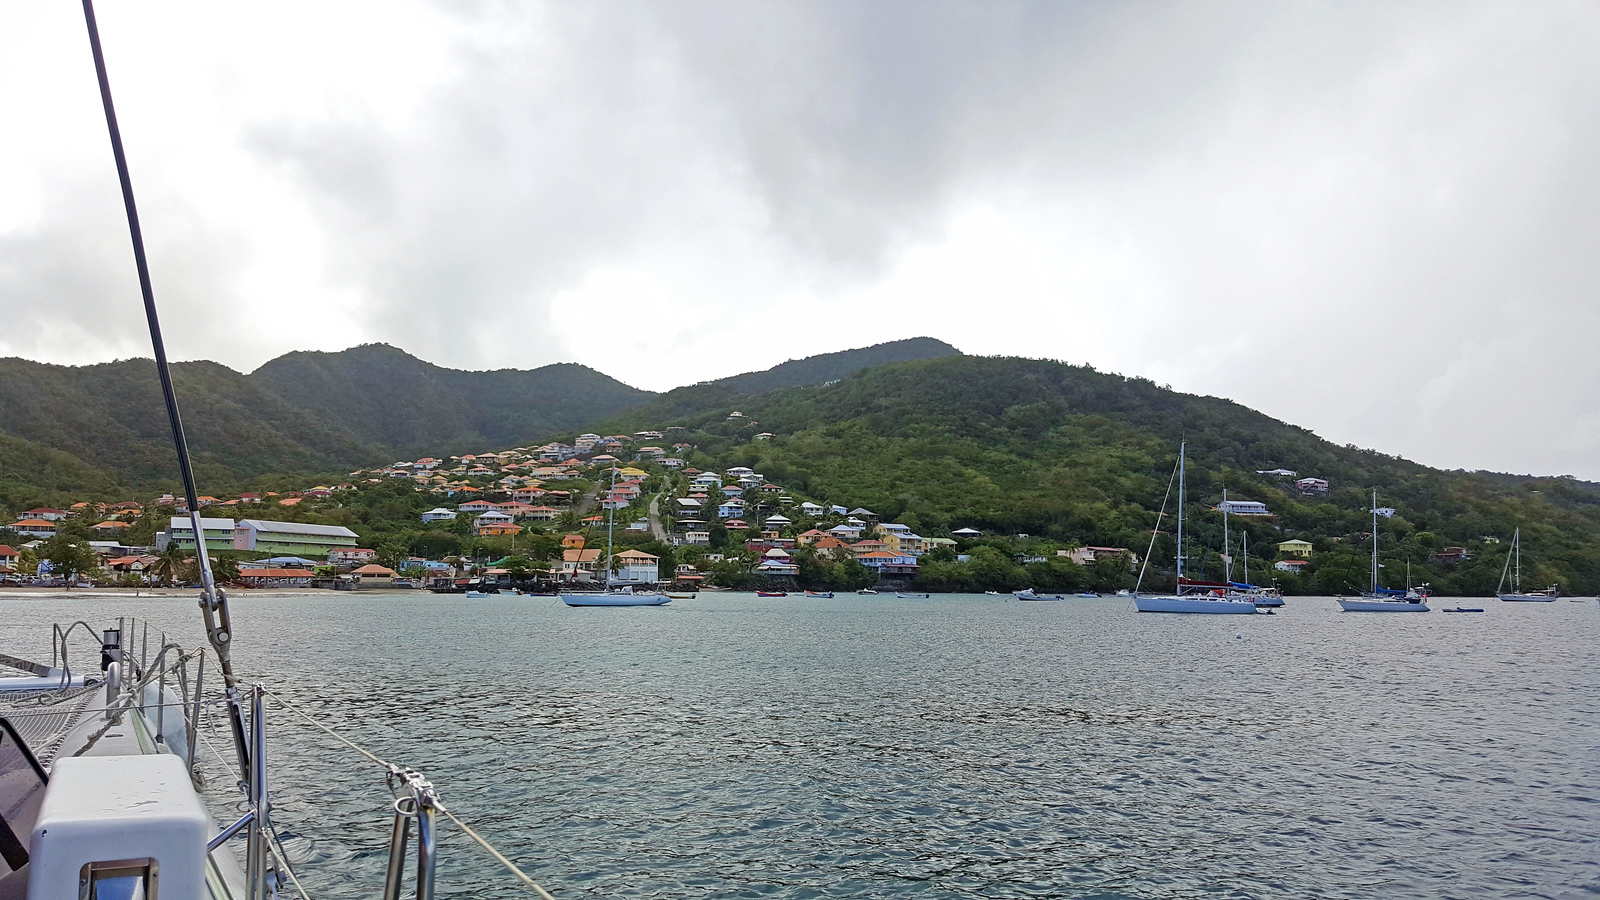 Things to do in Martinique - Cruise Ship Travel Guide